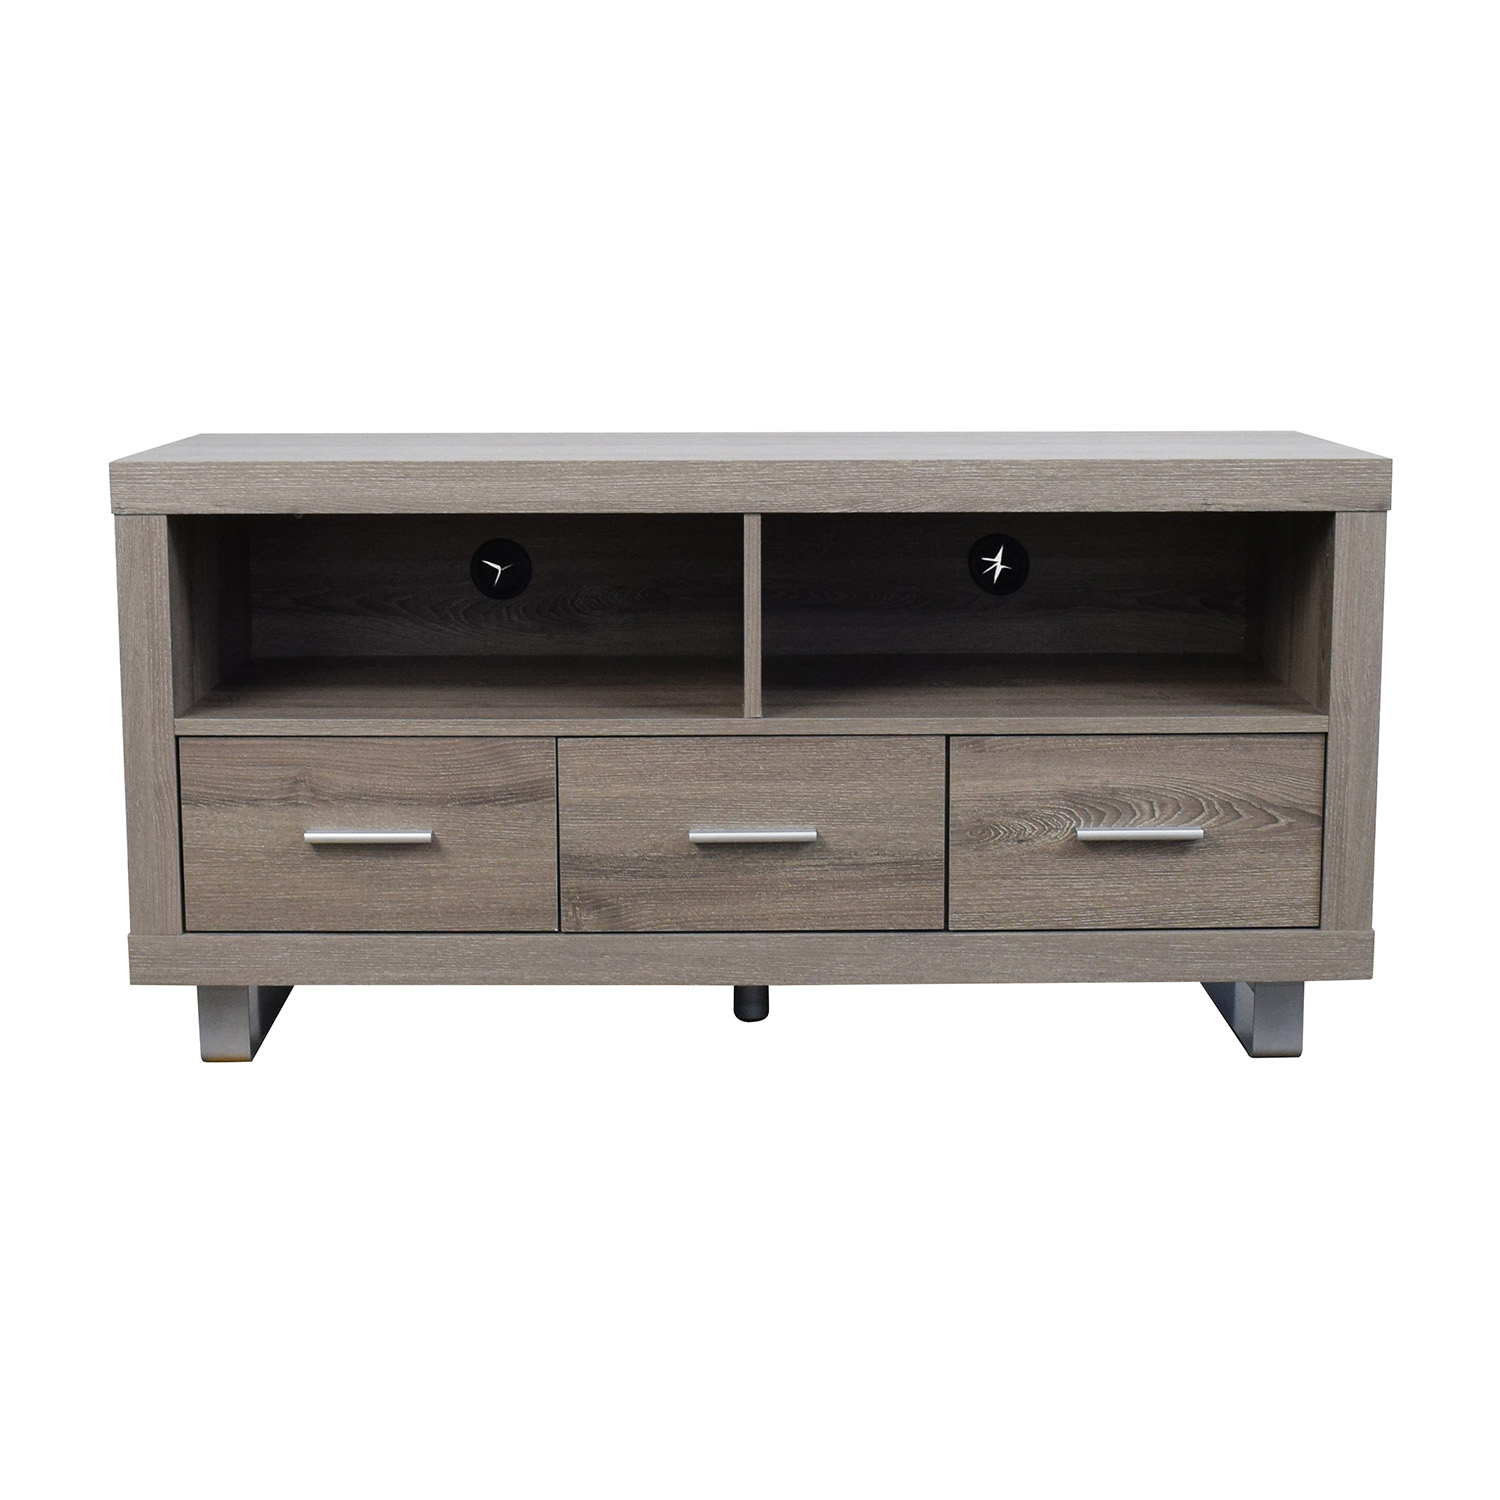 Monarch Specialties Inc. Monarch Specialties Light Brown TV Stand on sale